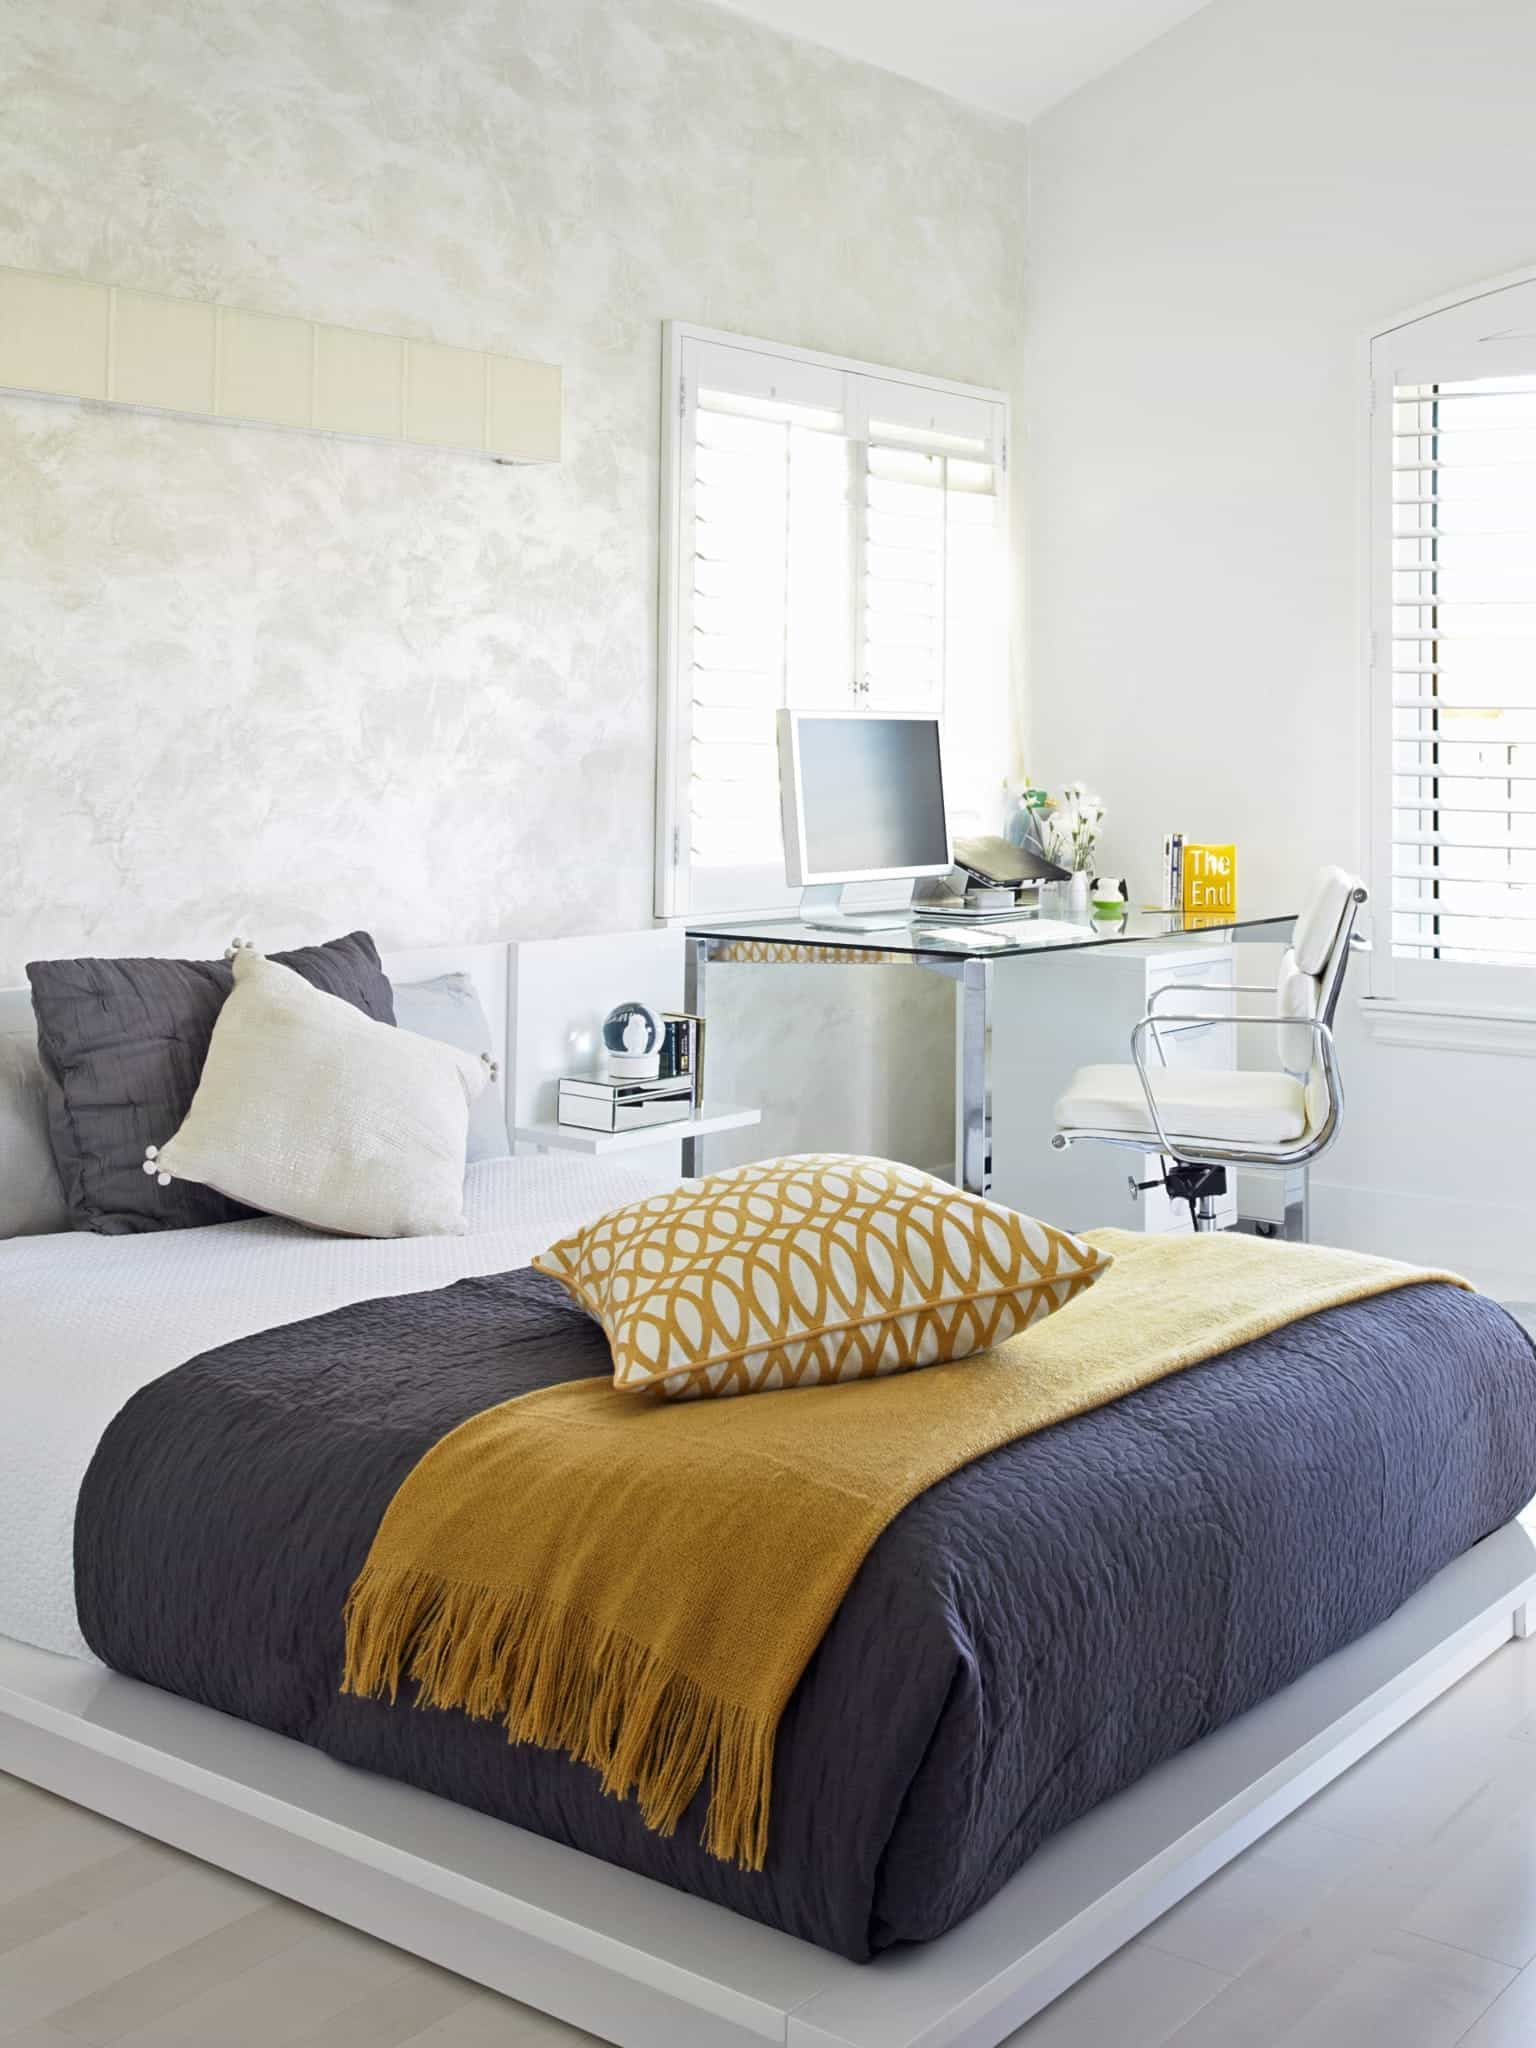 Minimalist Apartment Bedroom Decor Combo With Modern Workspace (Photo 6 of 28)